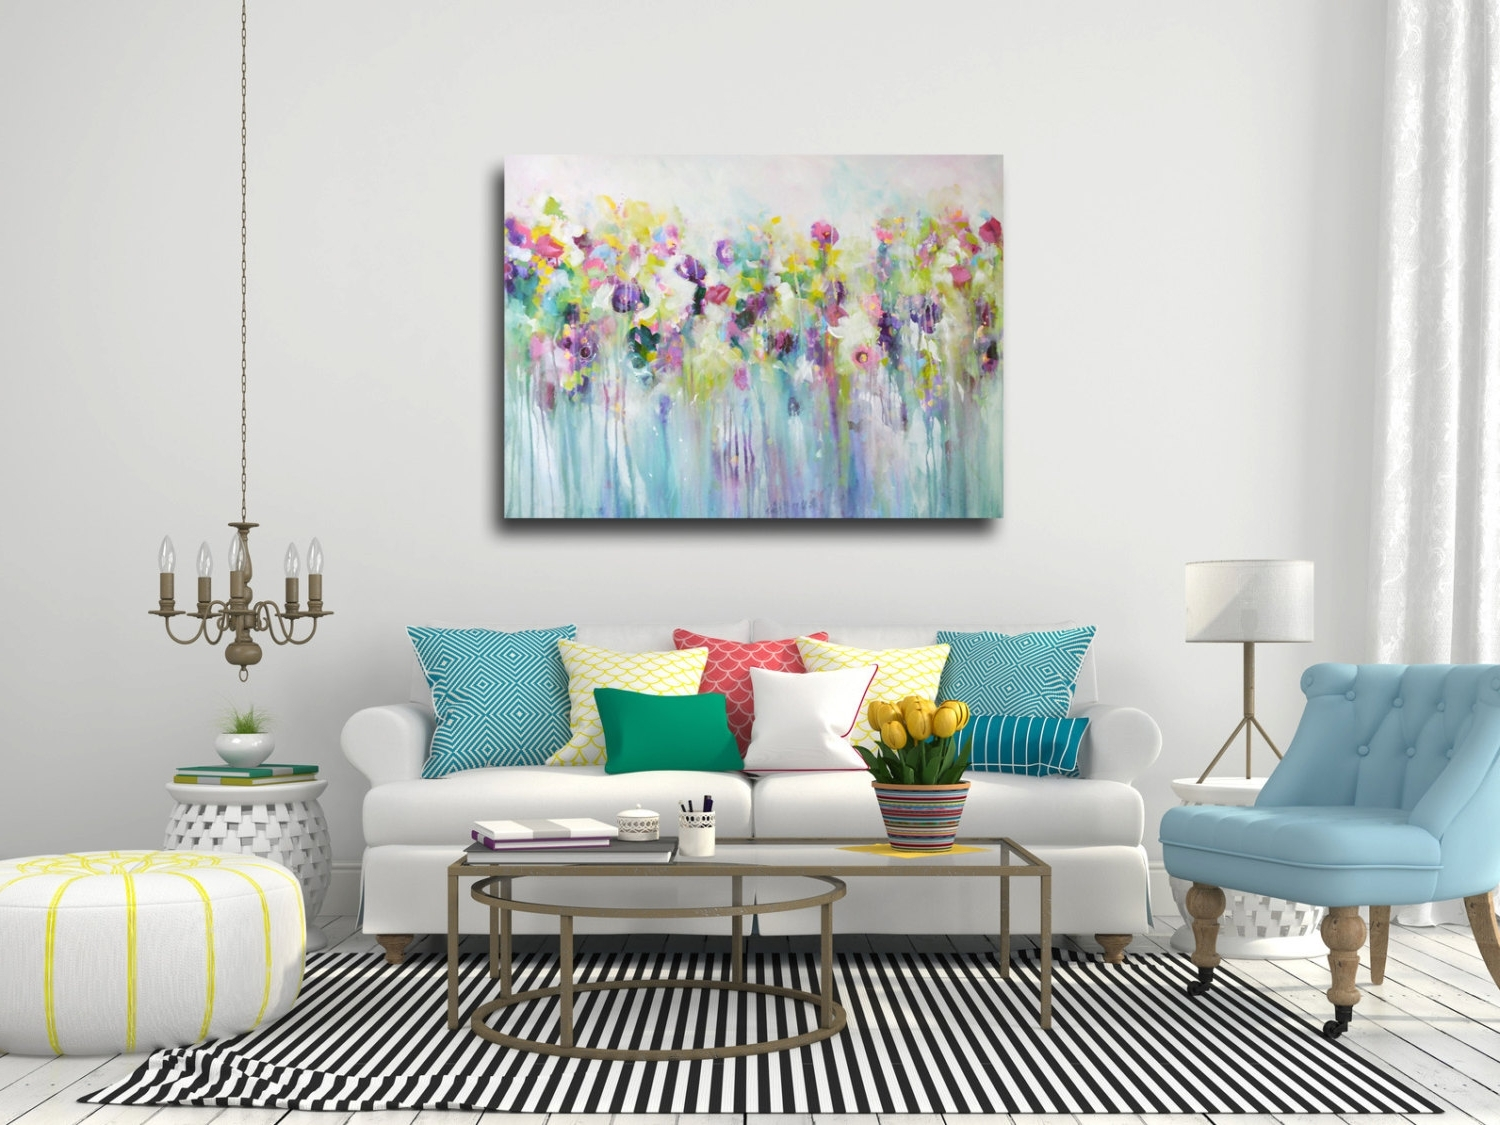 2018 Best of Large Abstract Canvas Wall Art